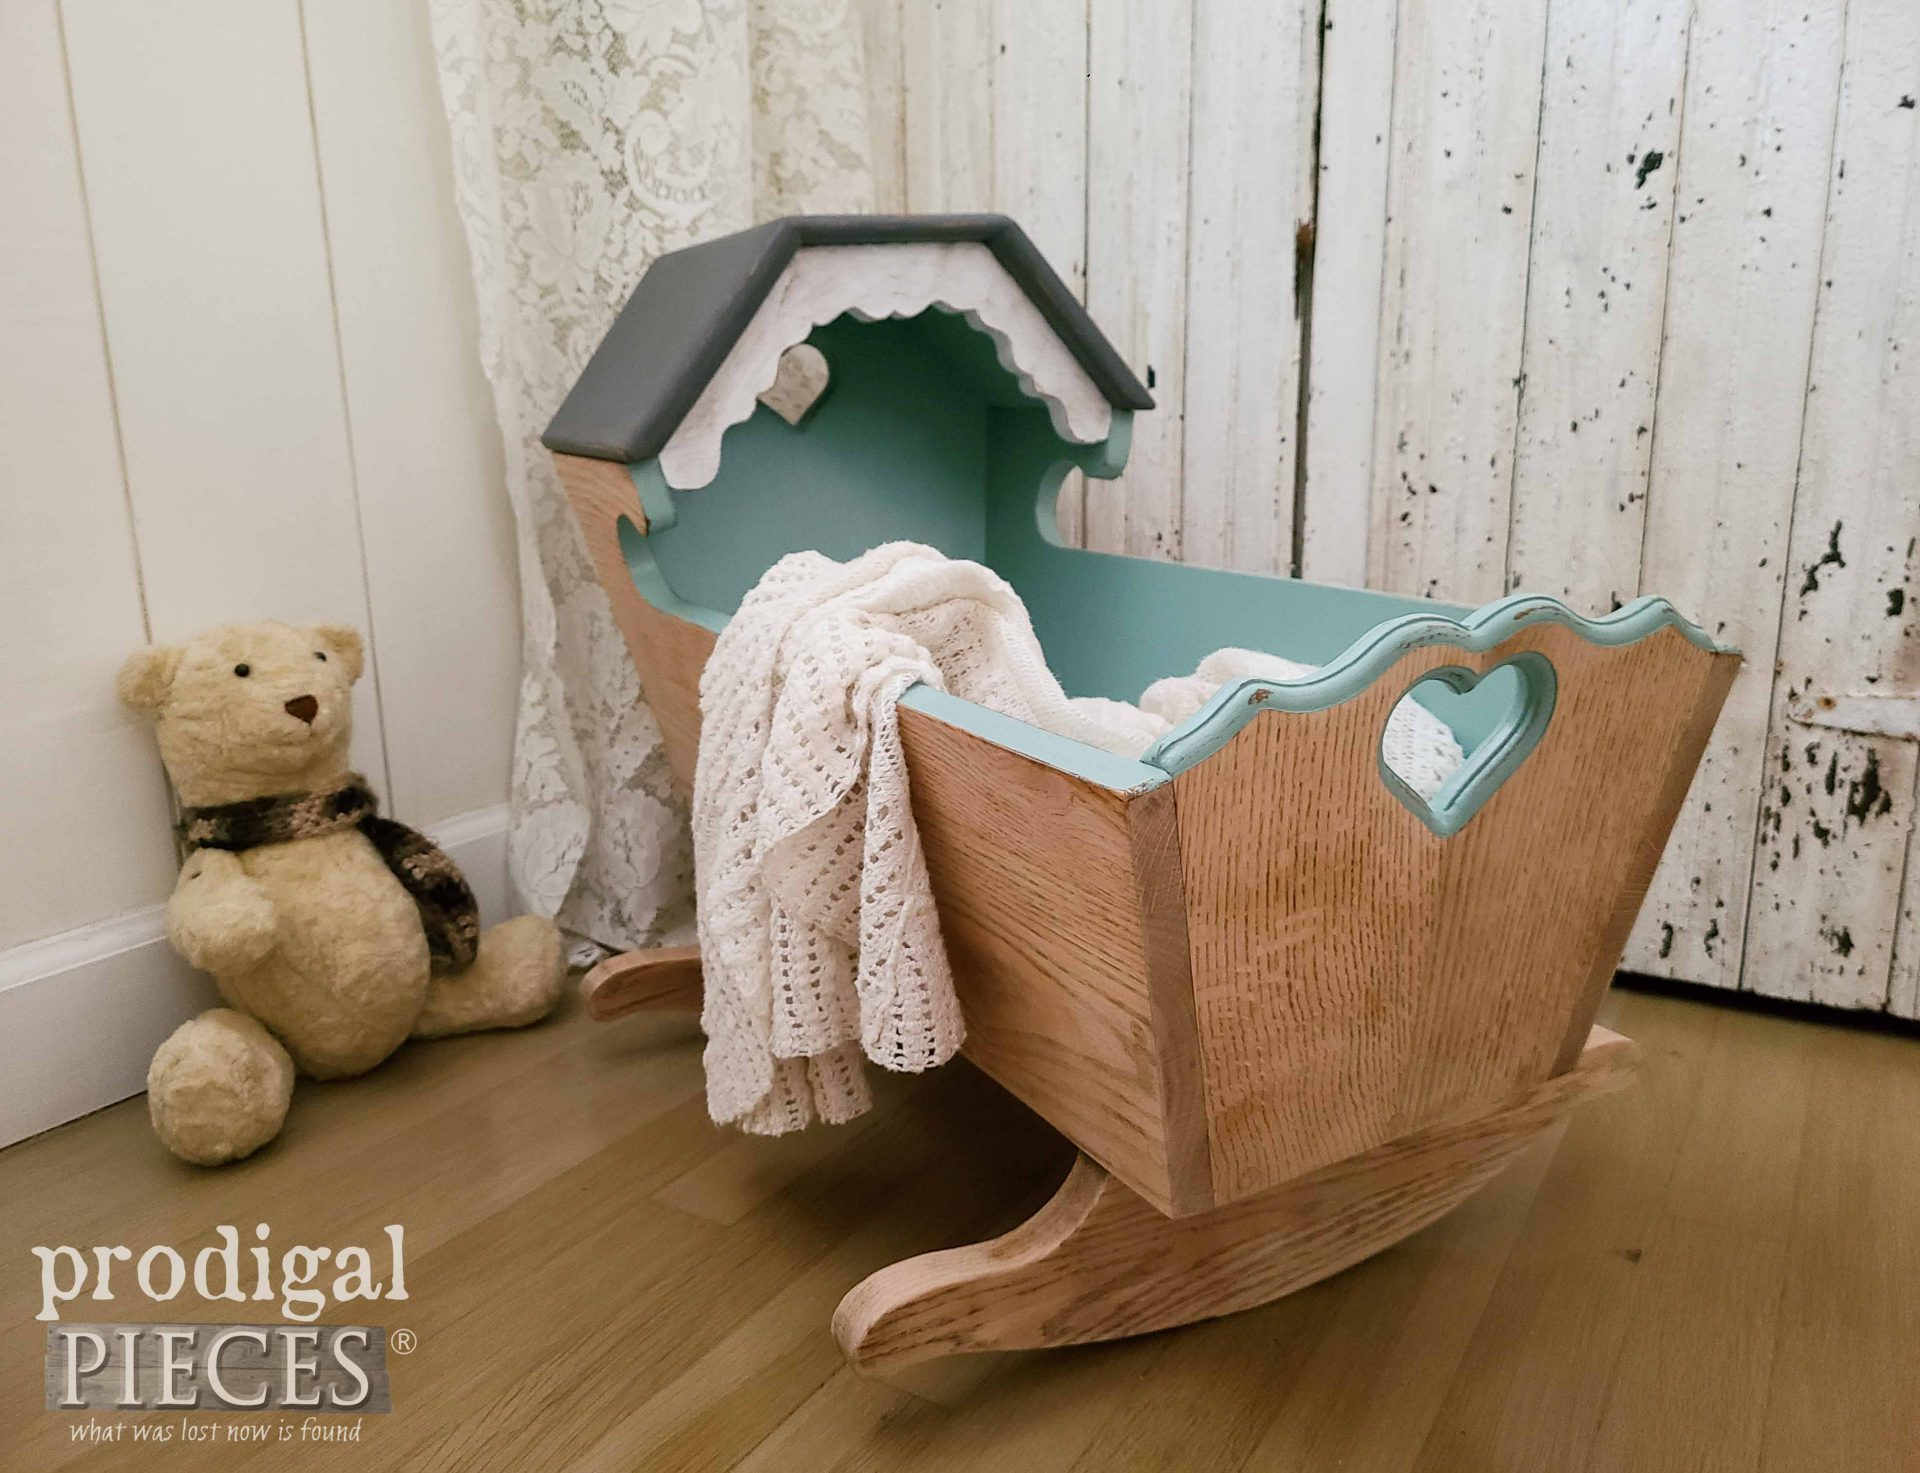 Rustic Farmhouse Style Handmade Vintage Baby Cradle by Larissa of Prodigal Pieces | prodigalpieces.com #prodigalpieces #home #farmhouse #diy #homedecor